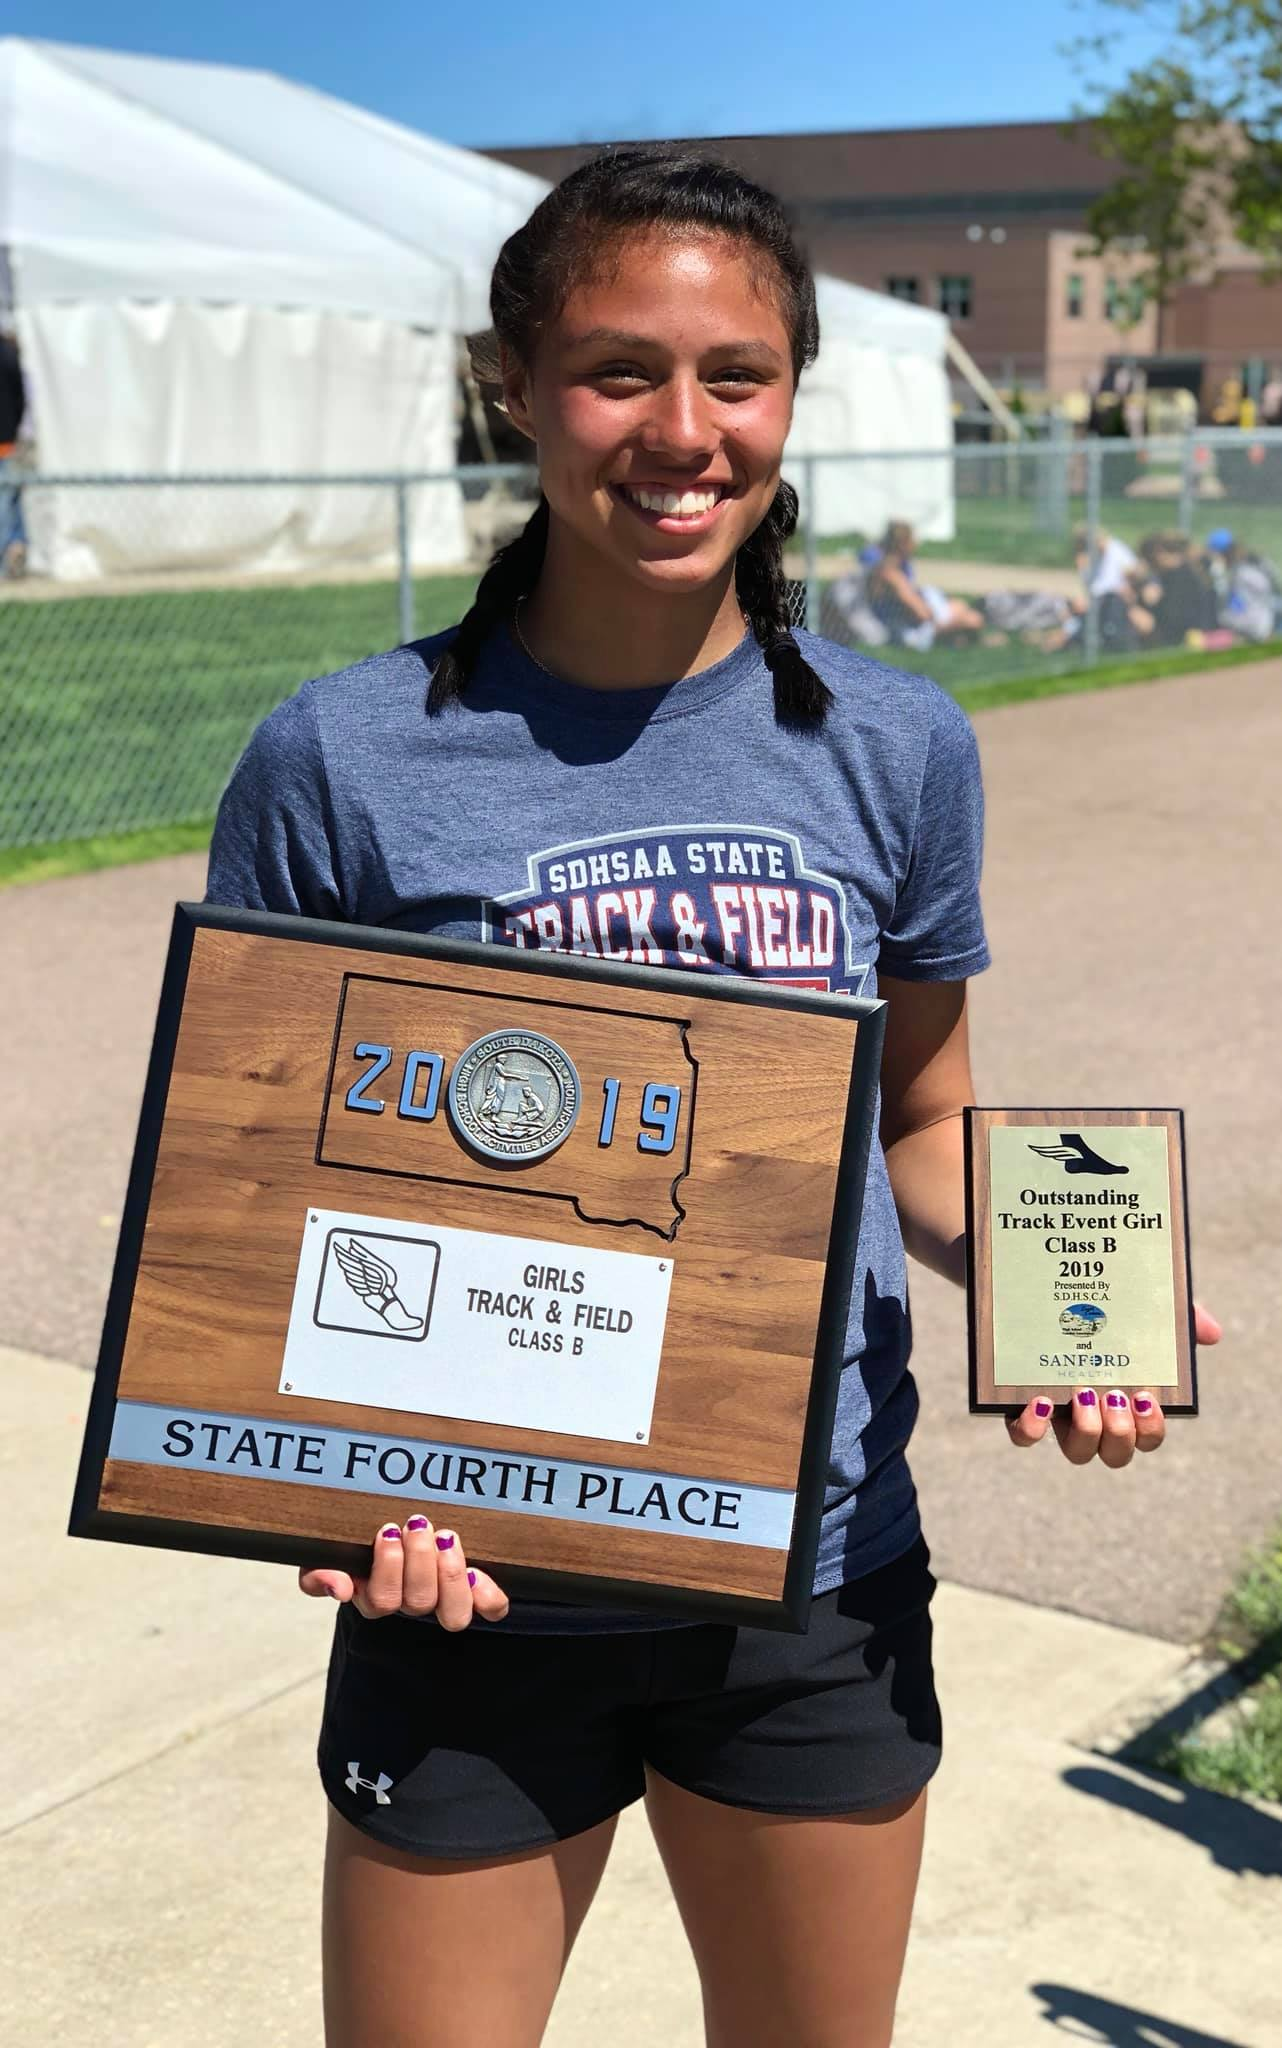 """- CVP was named the outstanding Class B track athlete.As the only White River girl competing in the state meet, CVP racked up 38 points to finish in fourth place as a TEAM.All season long, CVP dedicated her seasons to former TC coach, Tonya Whirlwind Soldier who lost her battle with cancer last fall.""""Seeing her win that like we planned all year, and her saying she wanted to do it for Tonya means the world!! Her placing 4th as a team made me think about her drive and her personal definition of team """"(T)onya (E)xists (A)round (M)e"""""""